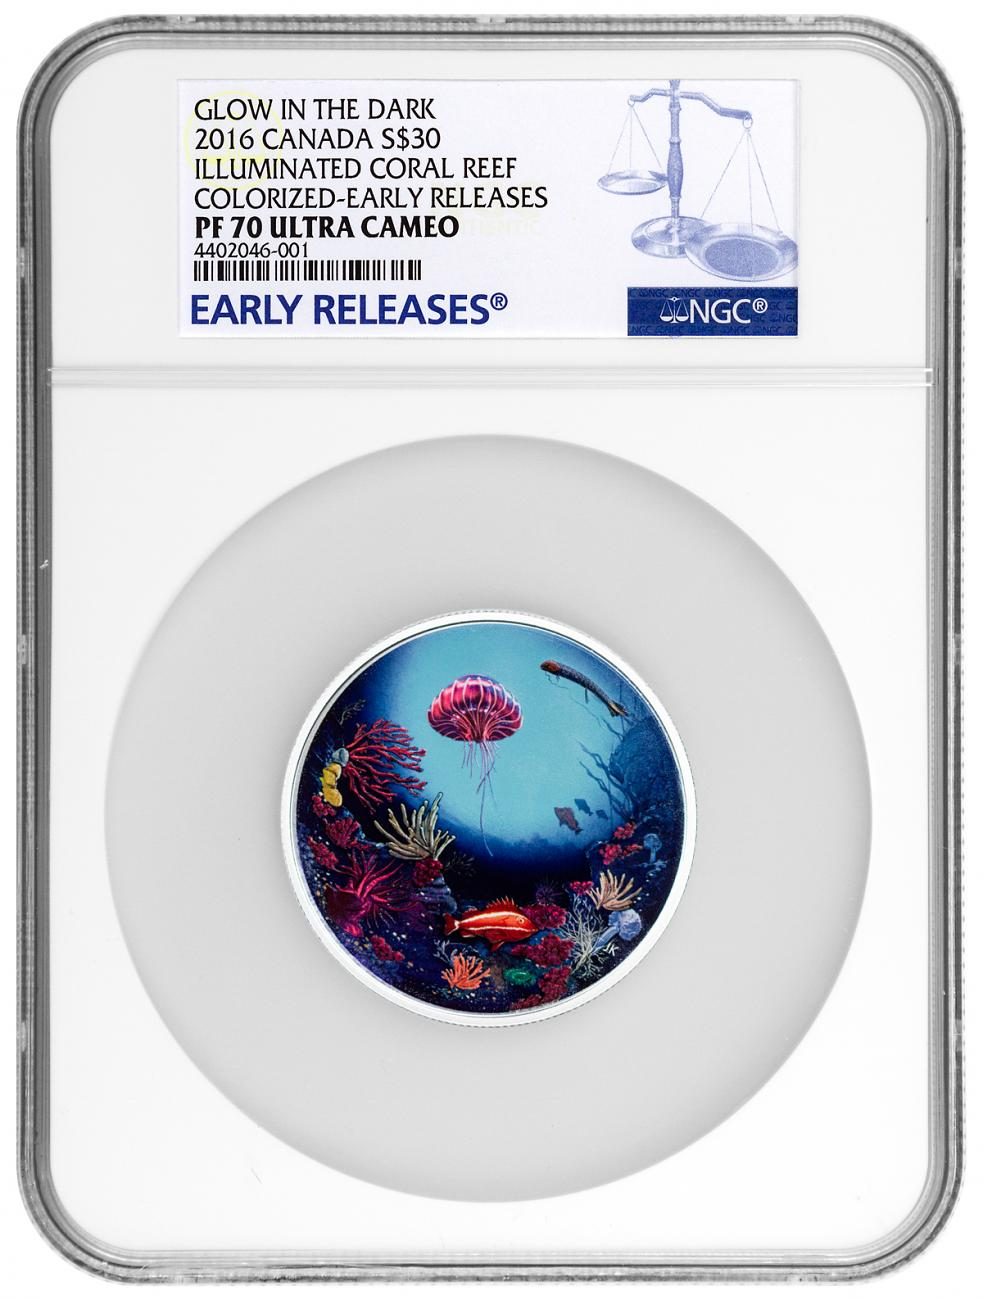 2016 Canada $30 2 oz. Colorized Proof Silver Glow in the Dark - Illuminated Underwater Reef - NGC PF70 UC Early Releases